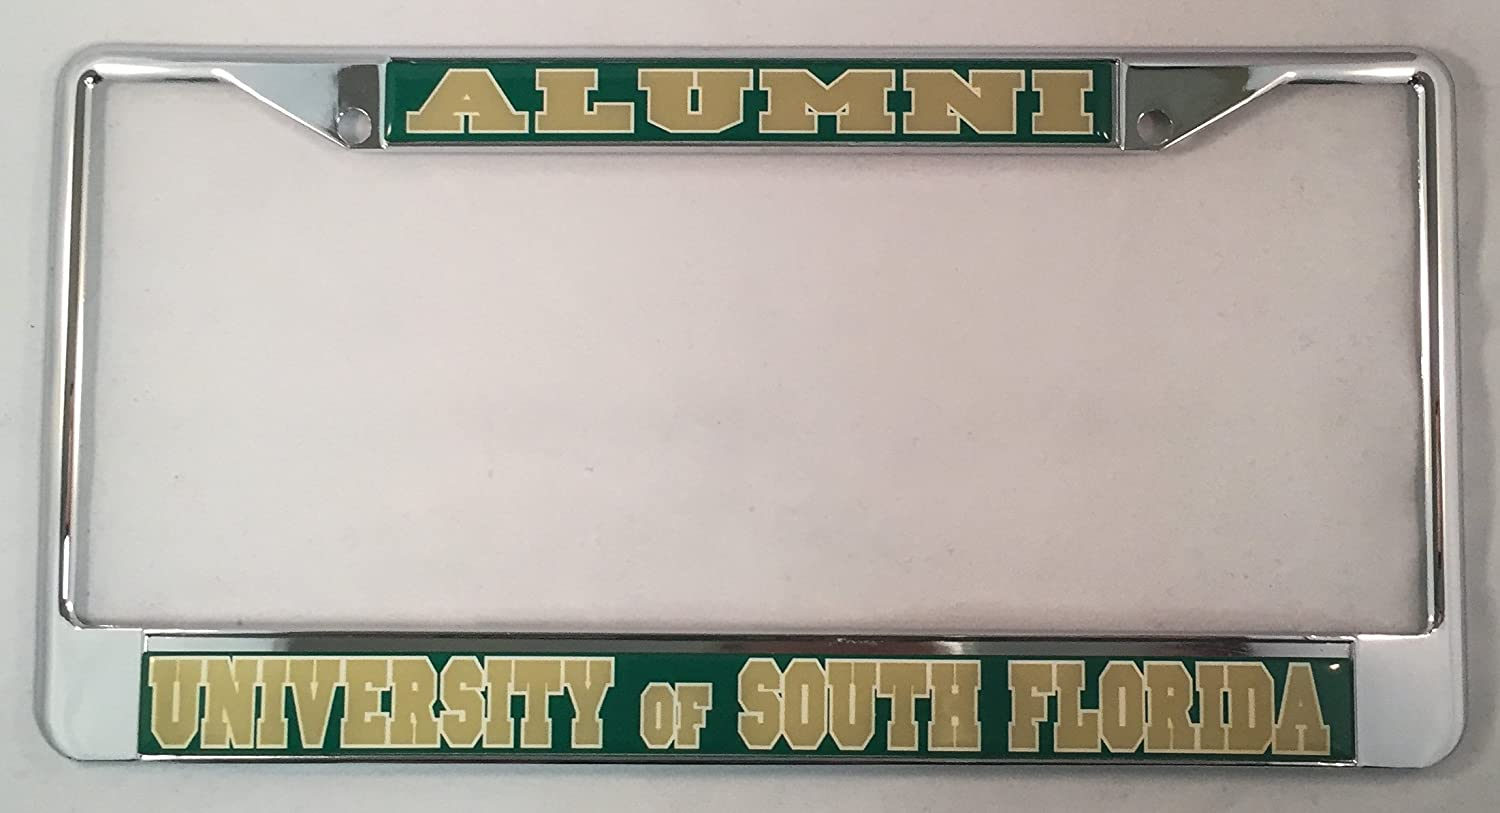 University of South Florida Alumni License Plate Frame Scotty Gear Fraternity /& Sorority Products